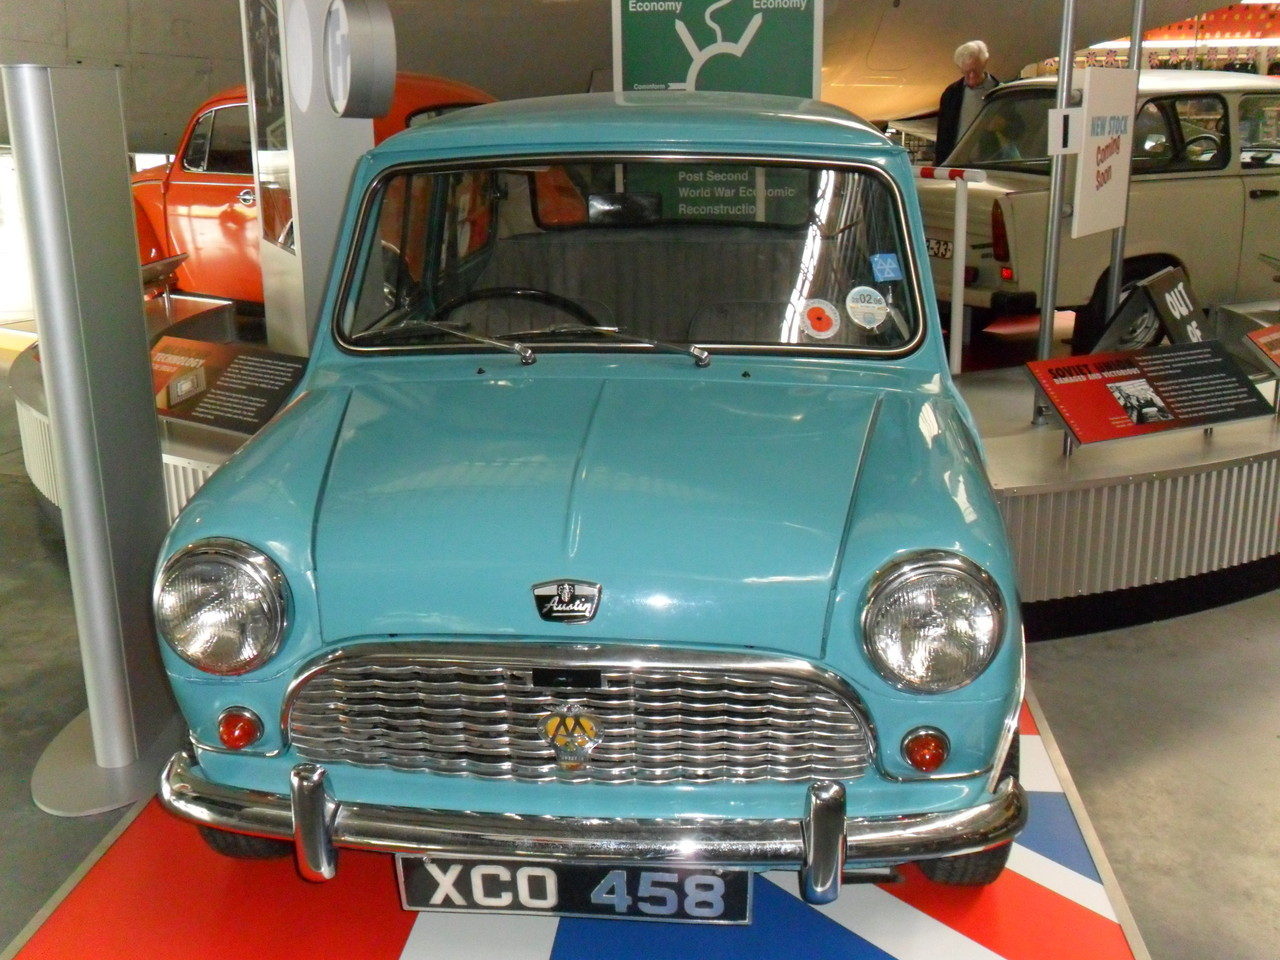 Austin Mini Mk1 on display at RAF Cosford Cold War exhibition, showing the difference between the Western economies in the Cold War and the USSR .